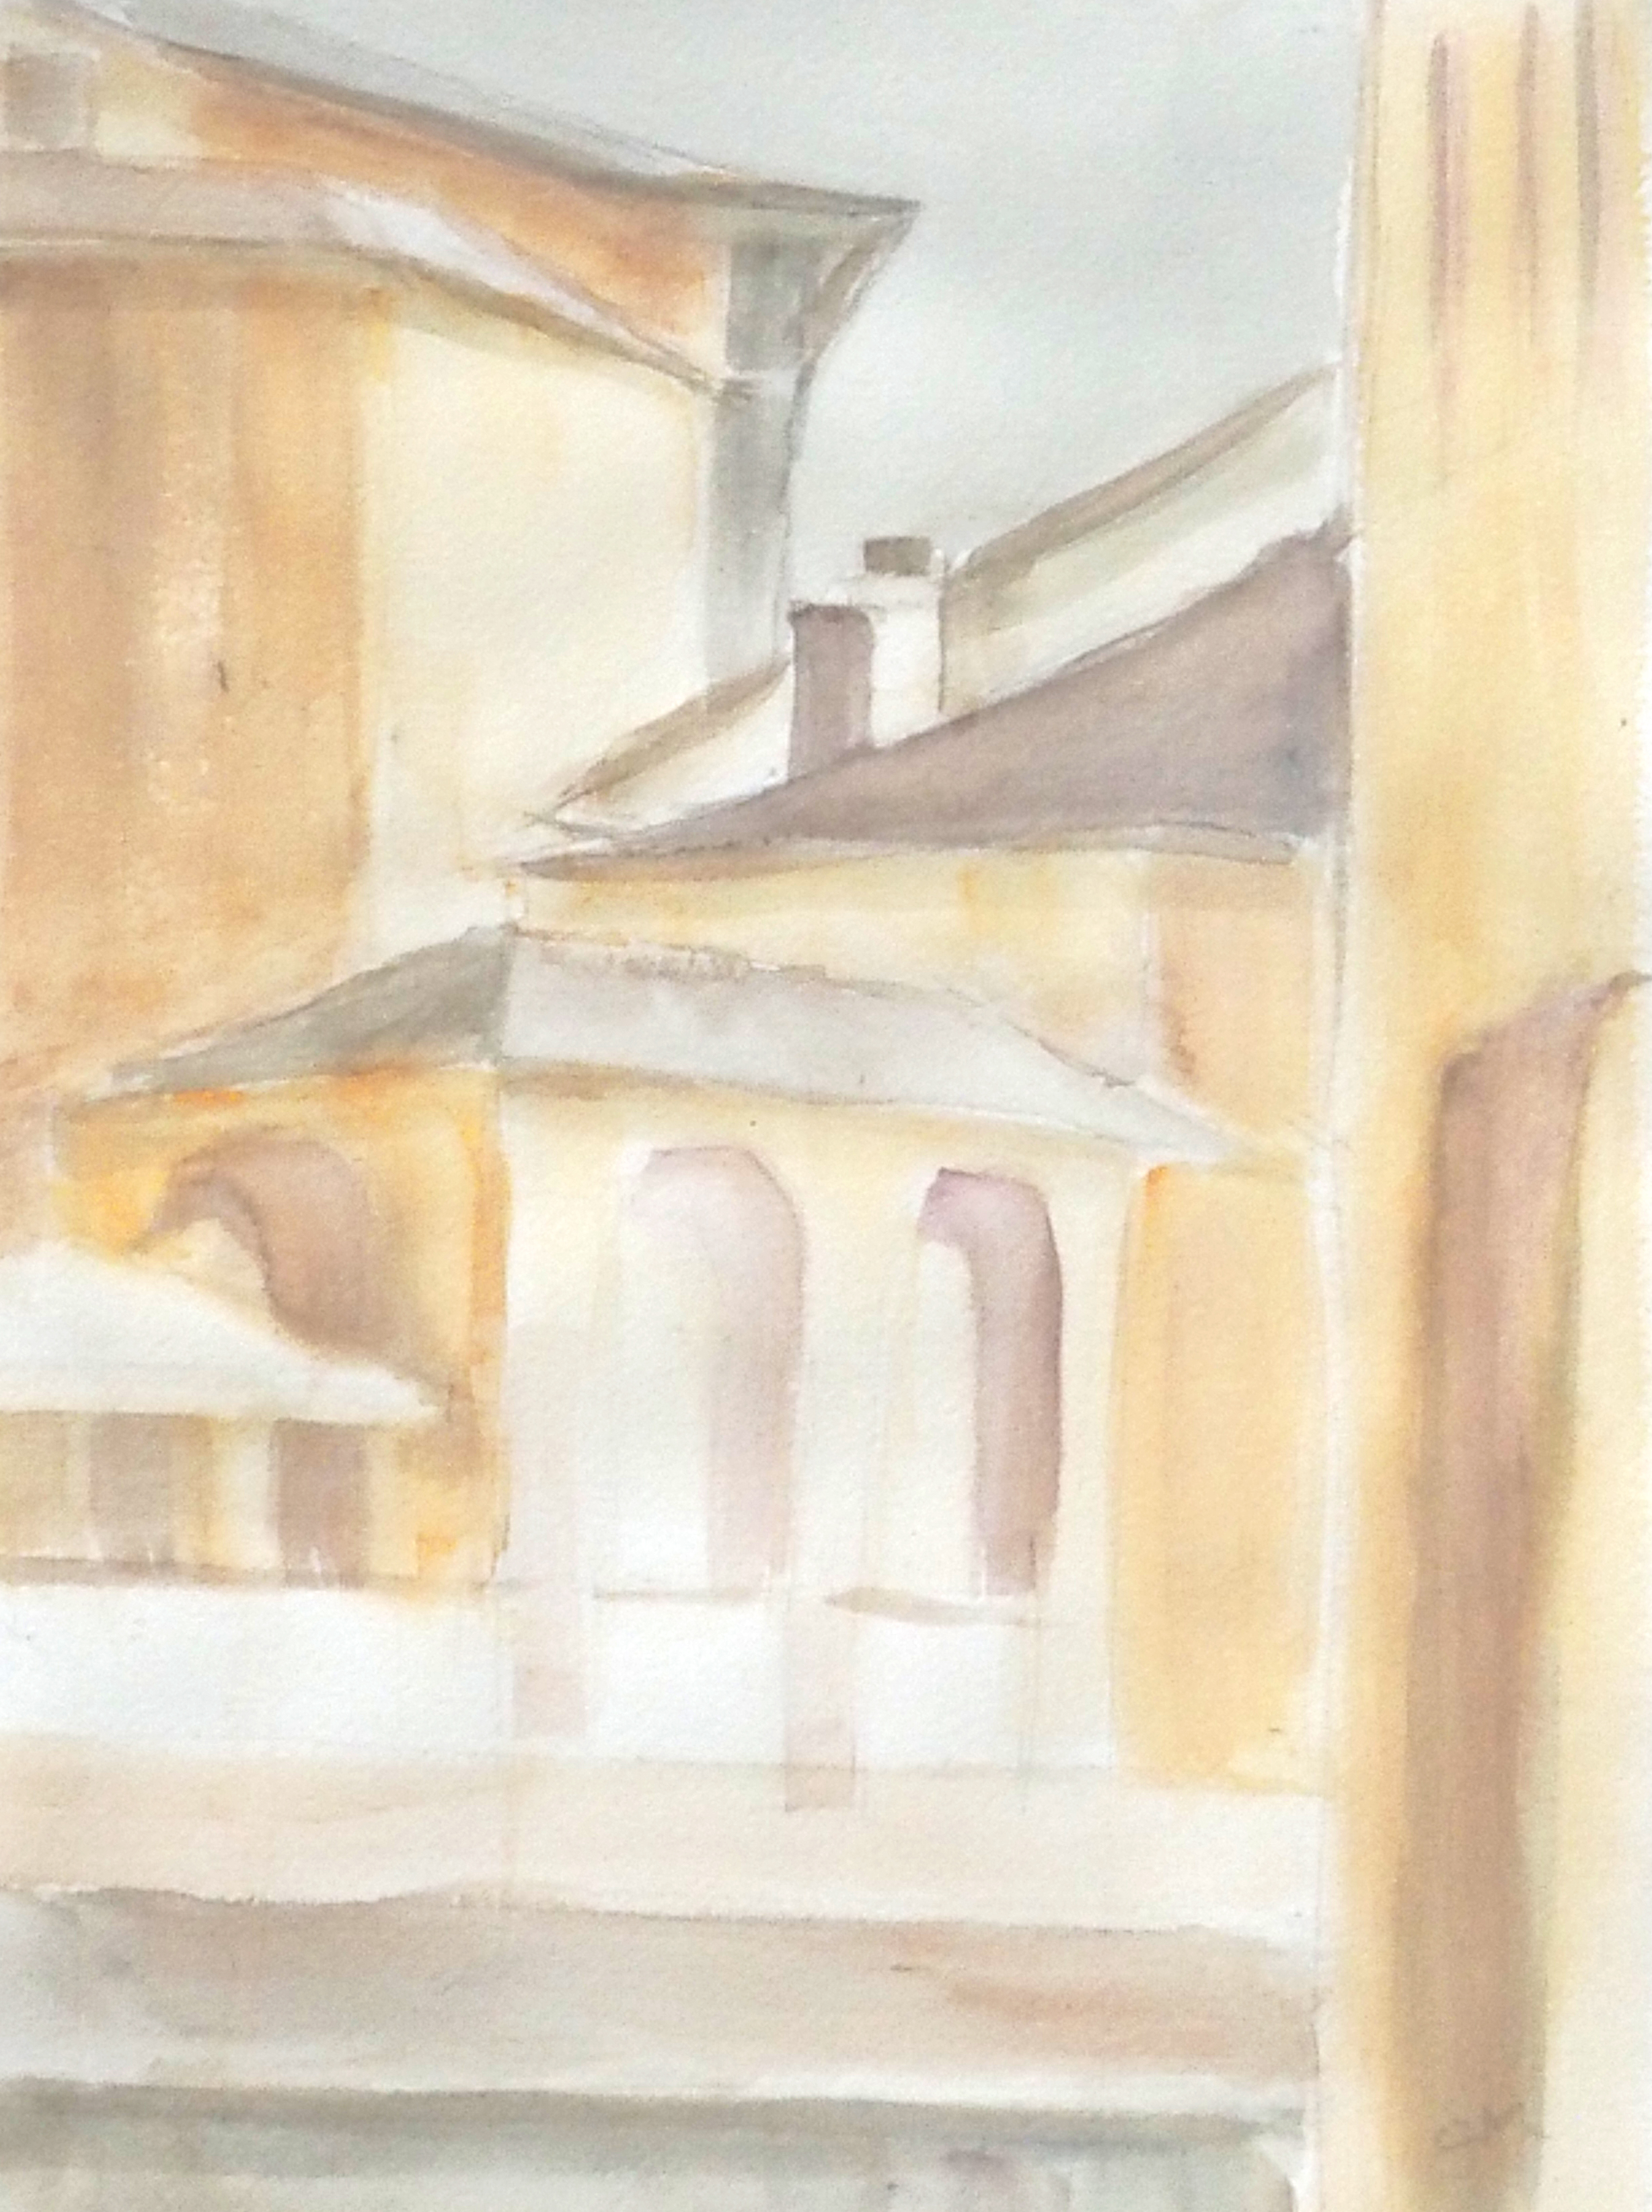 Cortona - Version 2, painted from the painting.